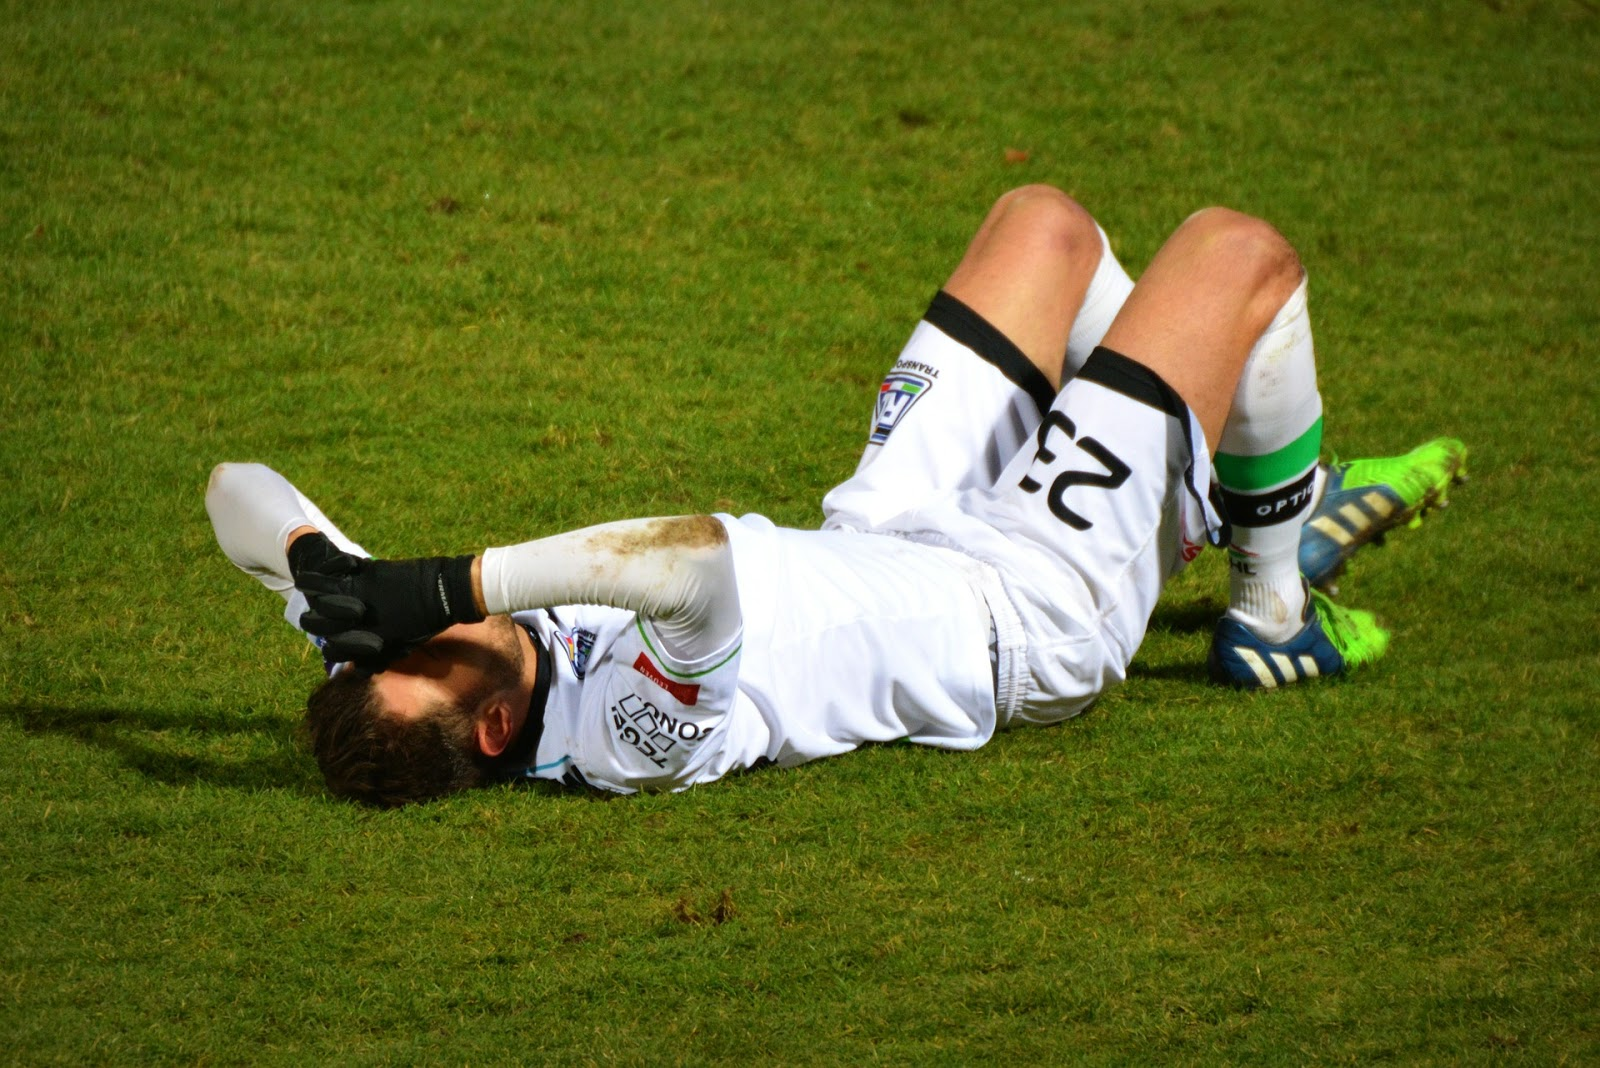 Soccer player lying on field trying to recover from concussion